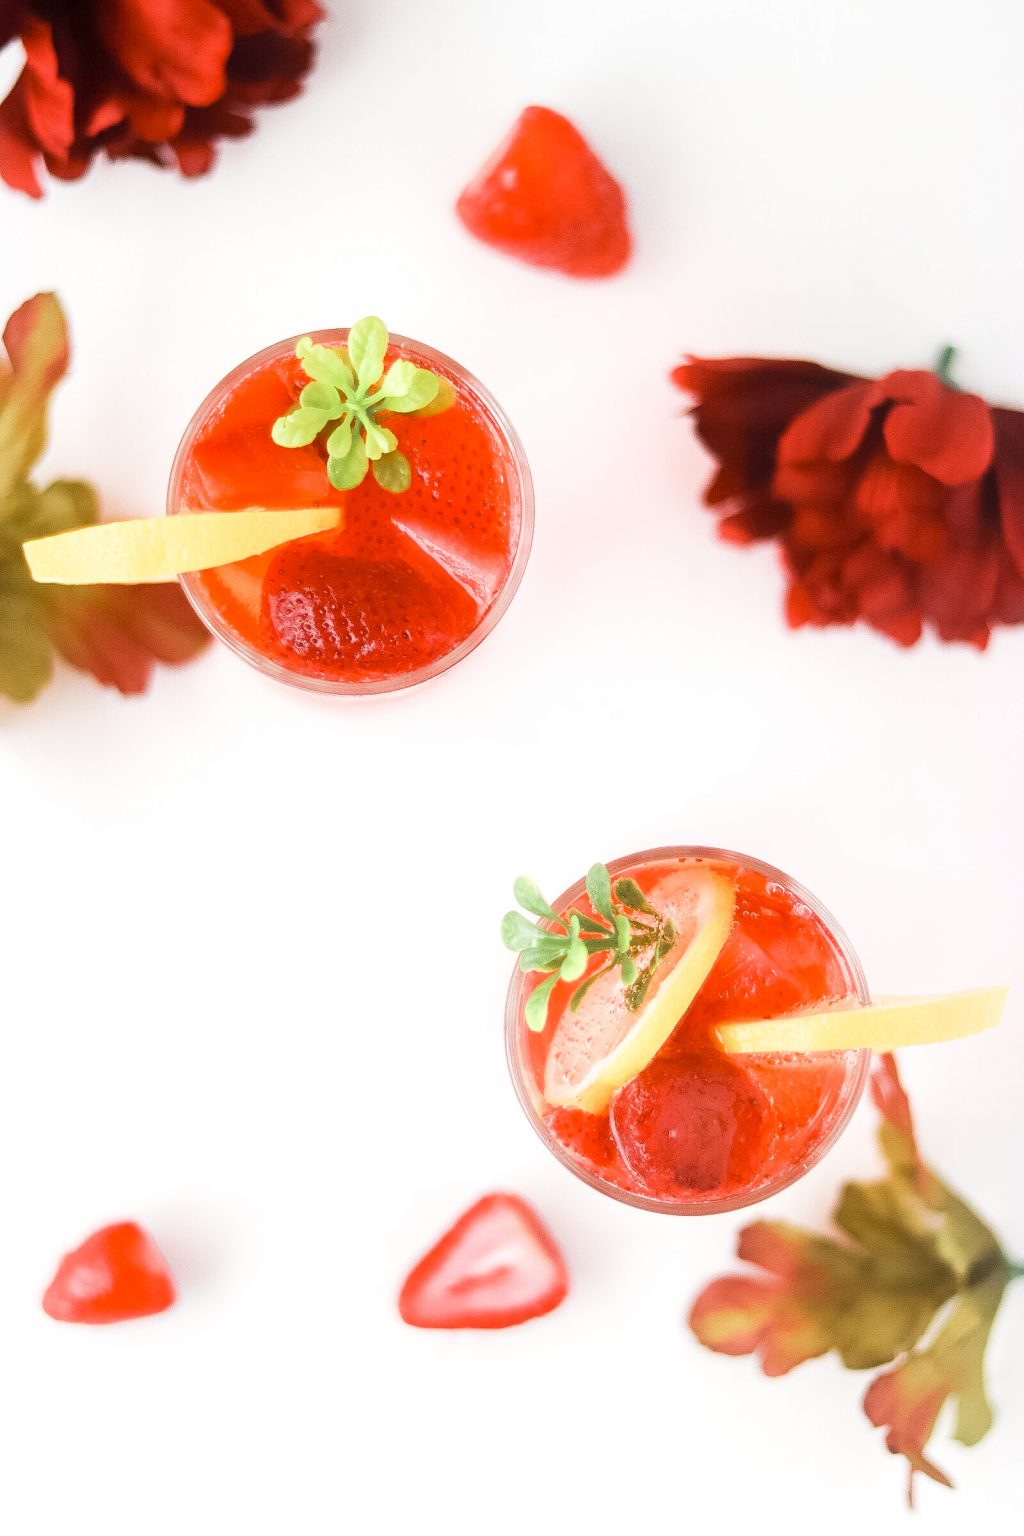 Strawberry sprite mocktail recipe 5750 1024x1536 - Strawberry Sprite Mocktail | Perfect Drink For The Summertime